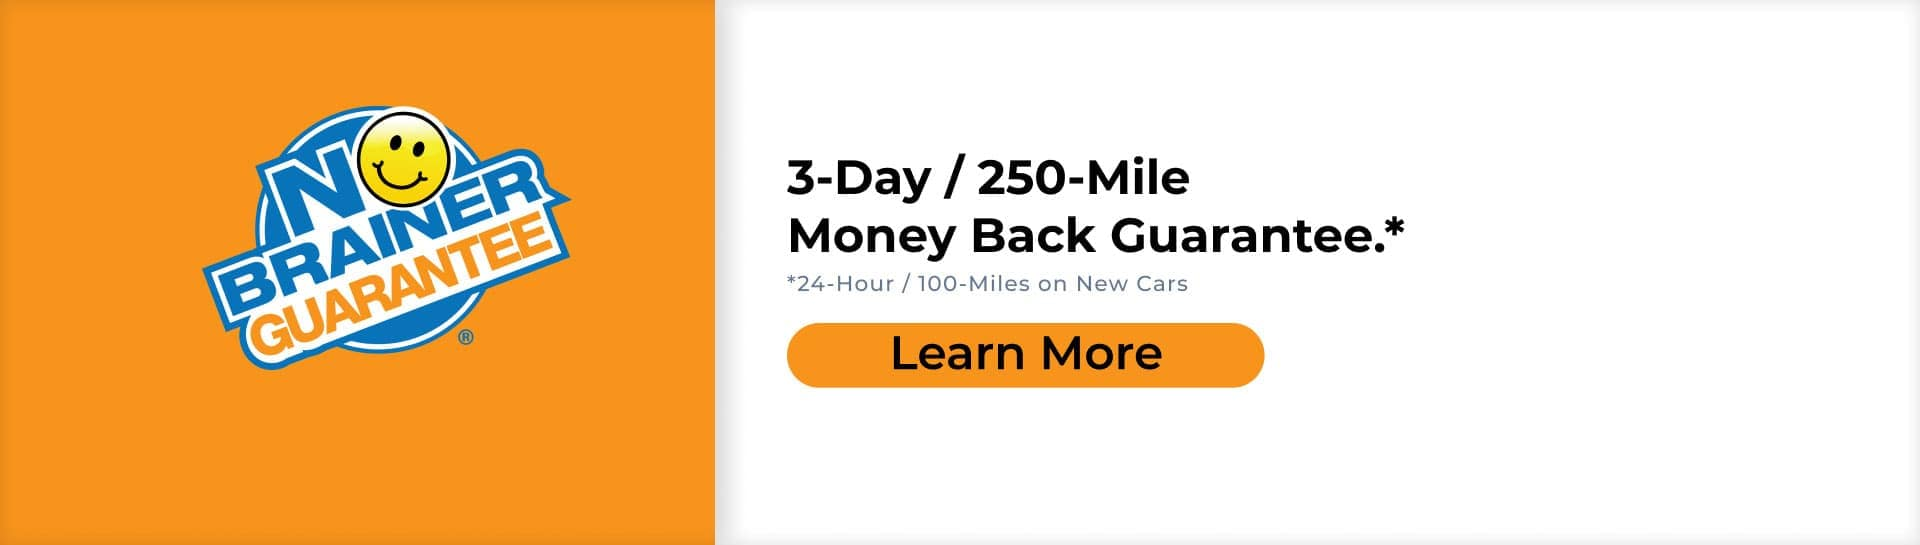 3-Day / 250-Mile Monday Back Guarantee Slider